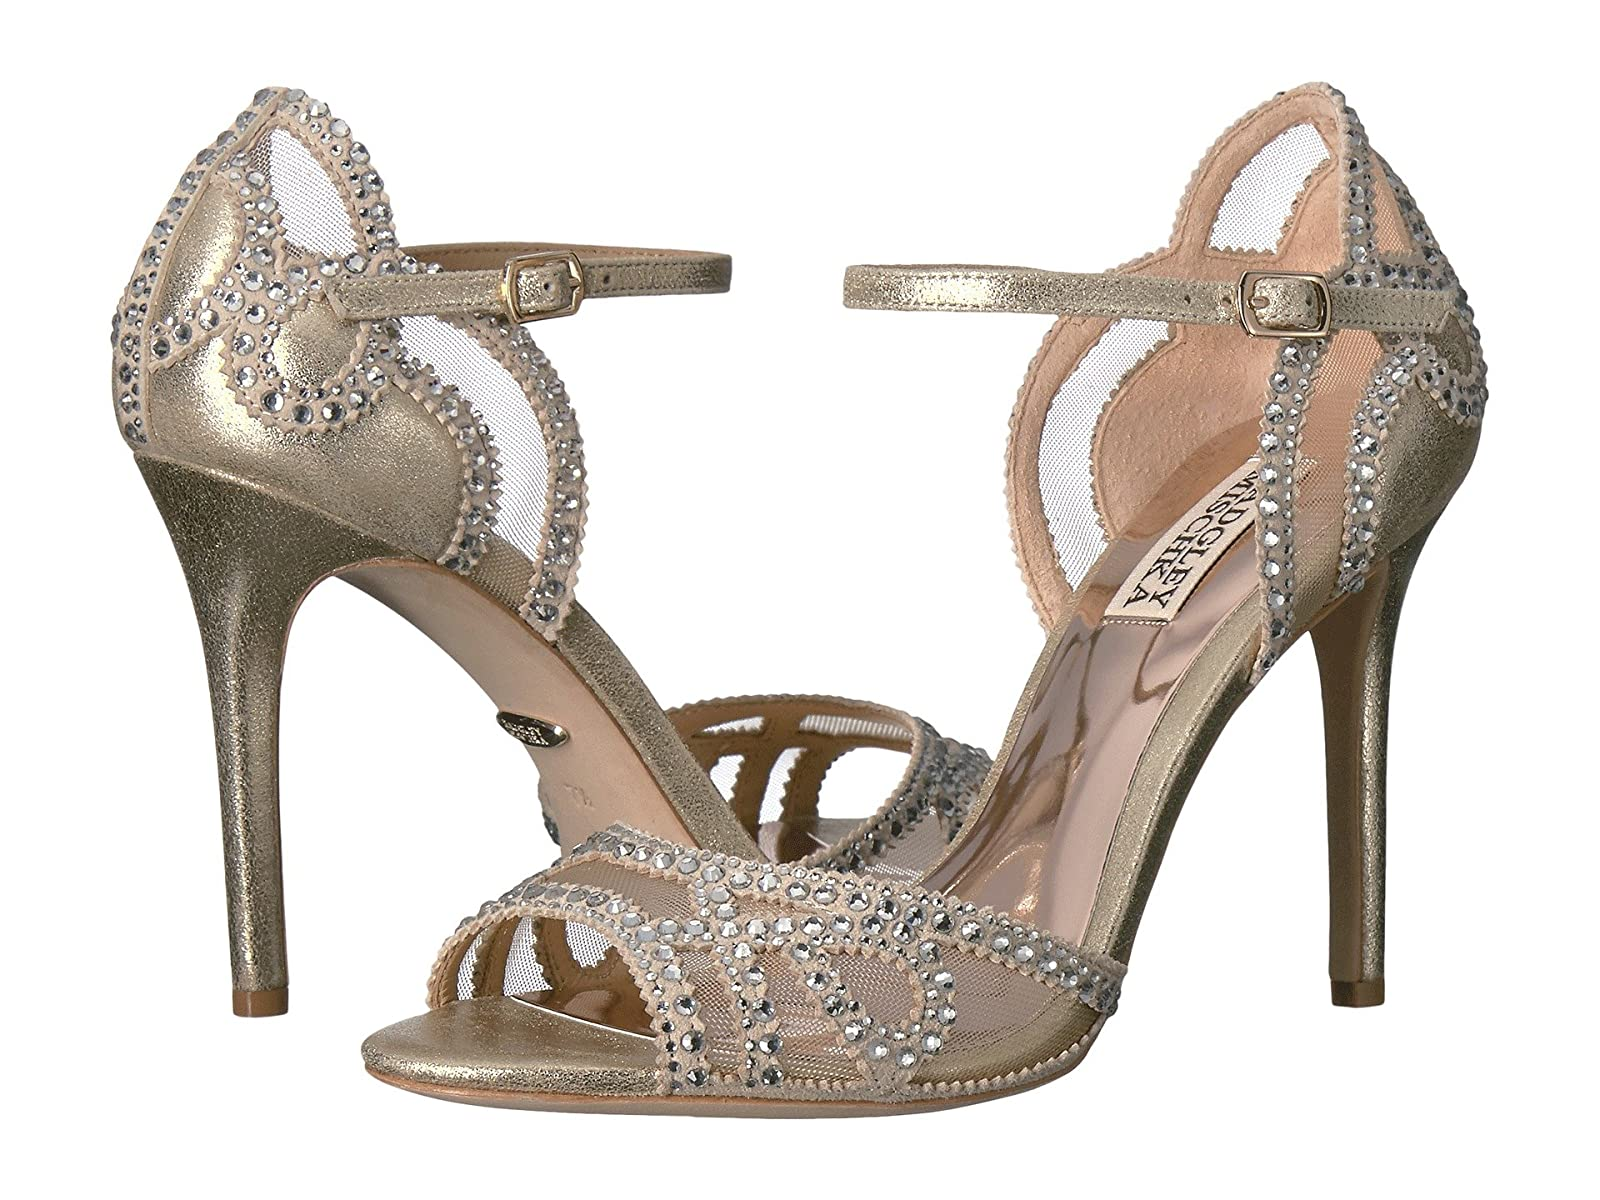 Badgley Mischka TansyCheap and distinctive eye-catching shoes